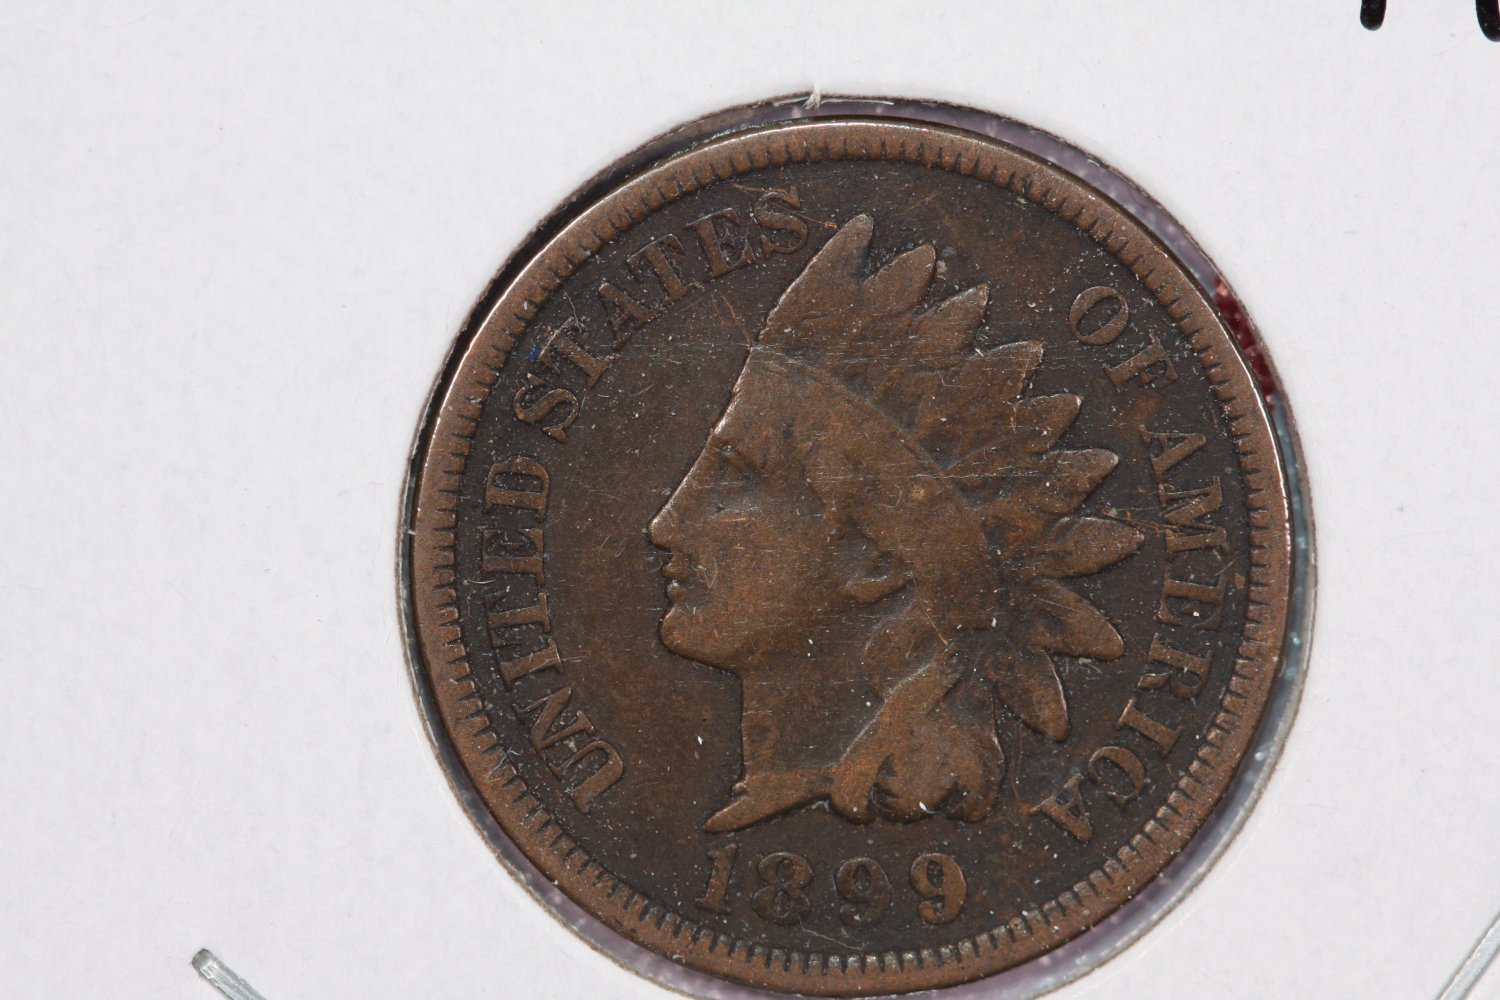 1899 1C Indian Head Cents. Good Circulated Coin. LARGE COIN STORE SALE #2635